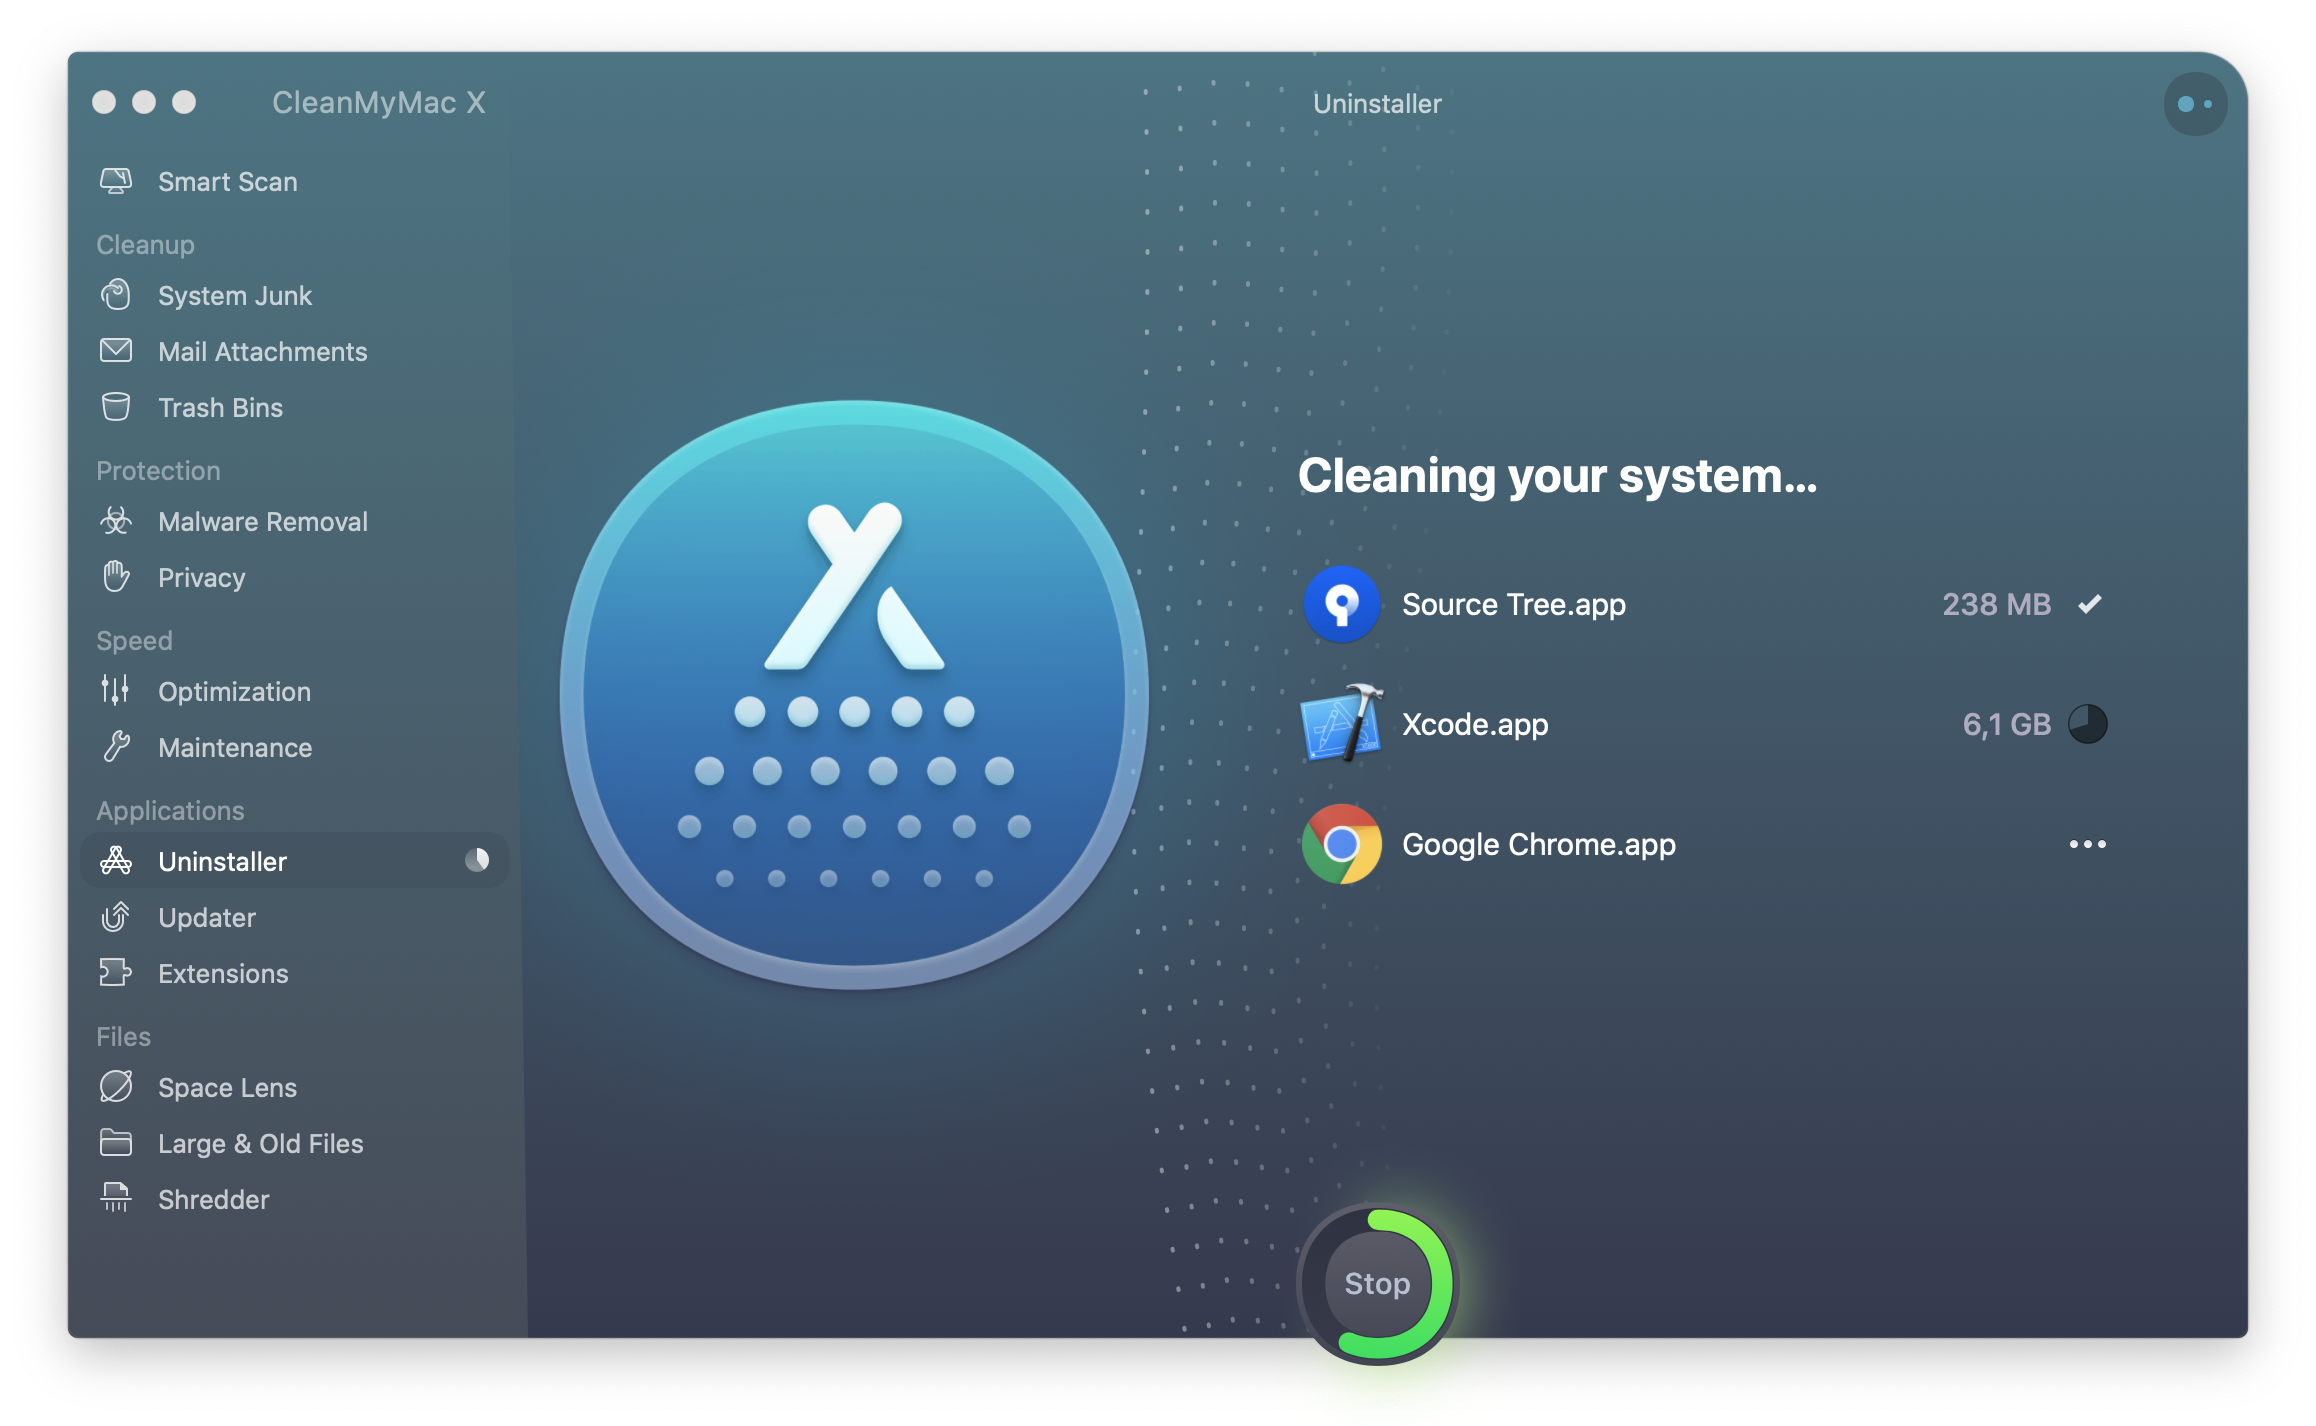 app uninstaller in CleanMyMac X